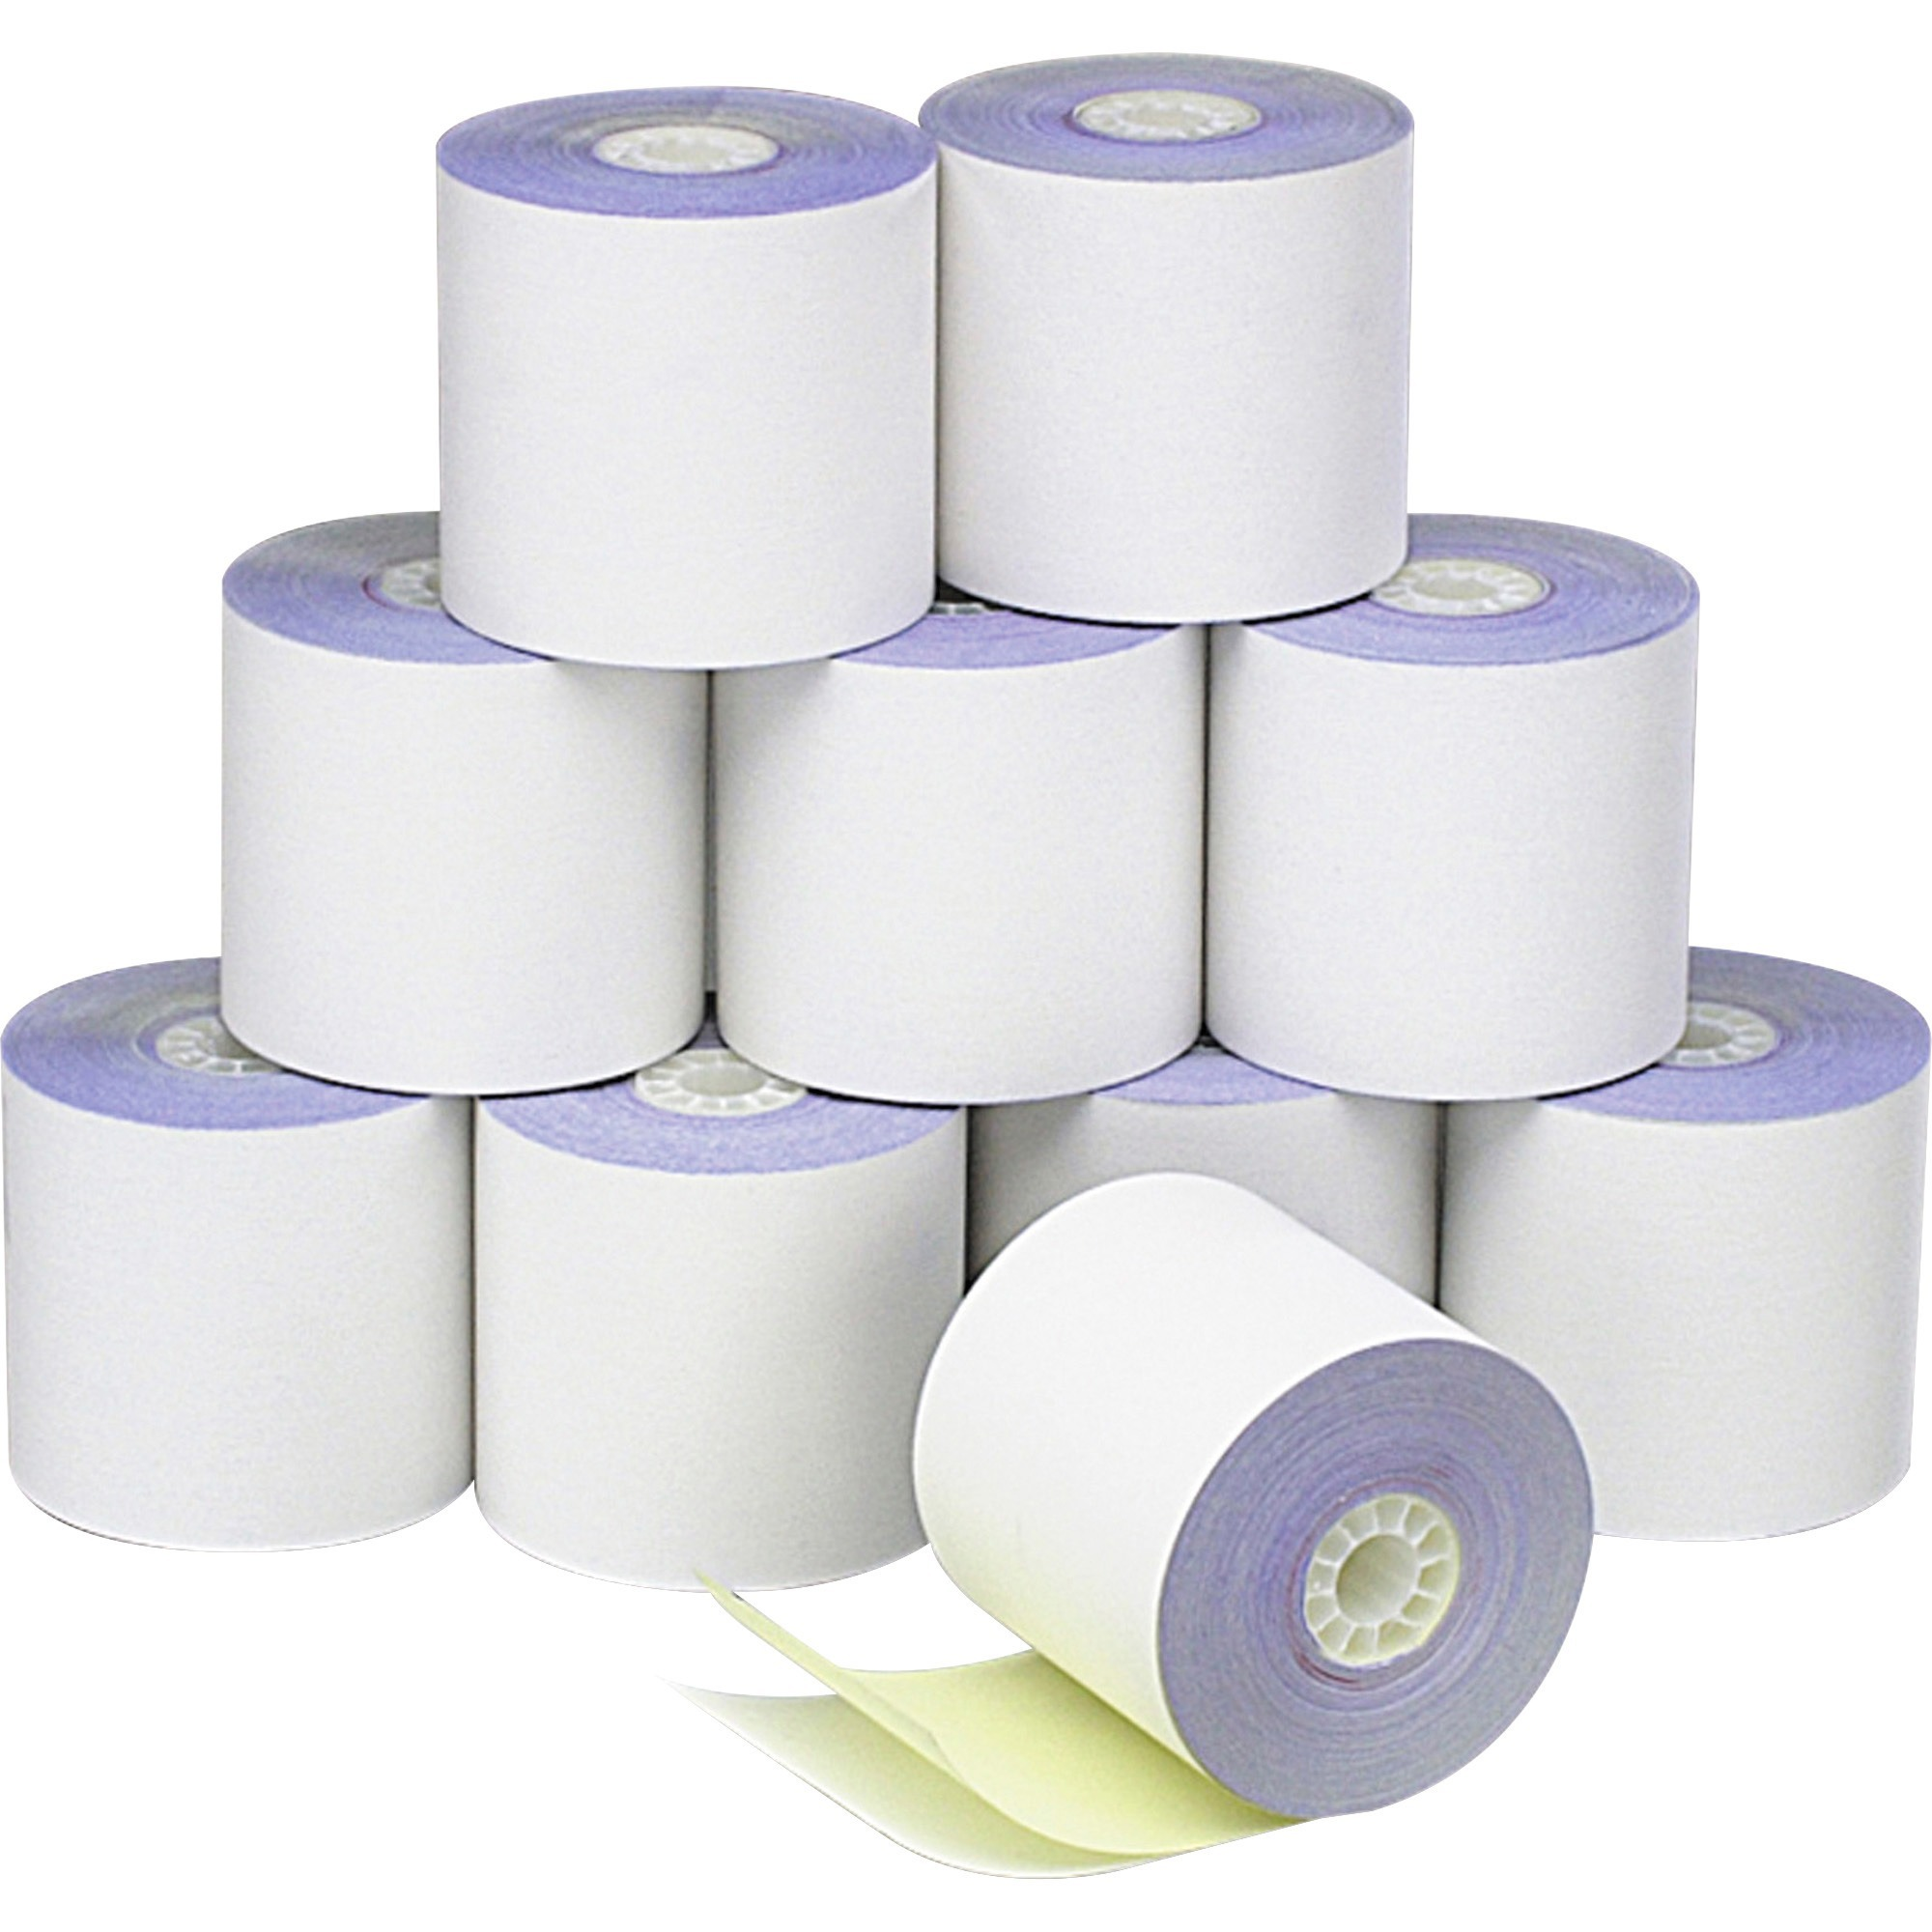 PM, PMC09325, 2-Ply Self-Contained Financial Rolls, 10 / Pack, White,Canary